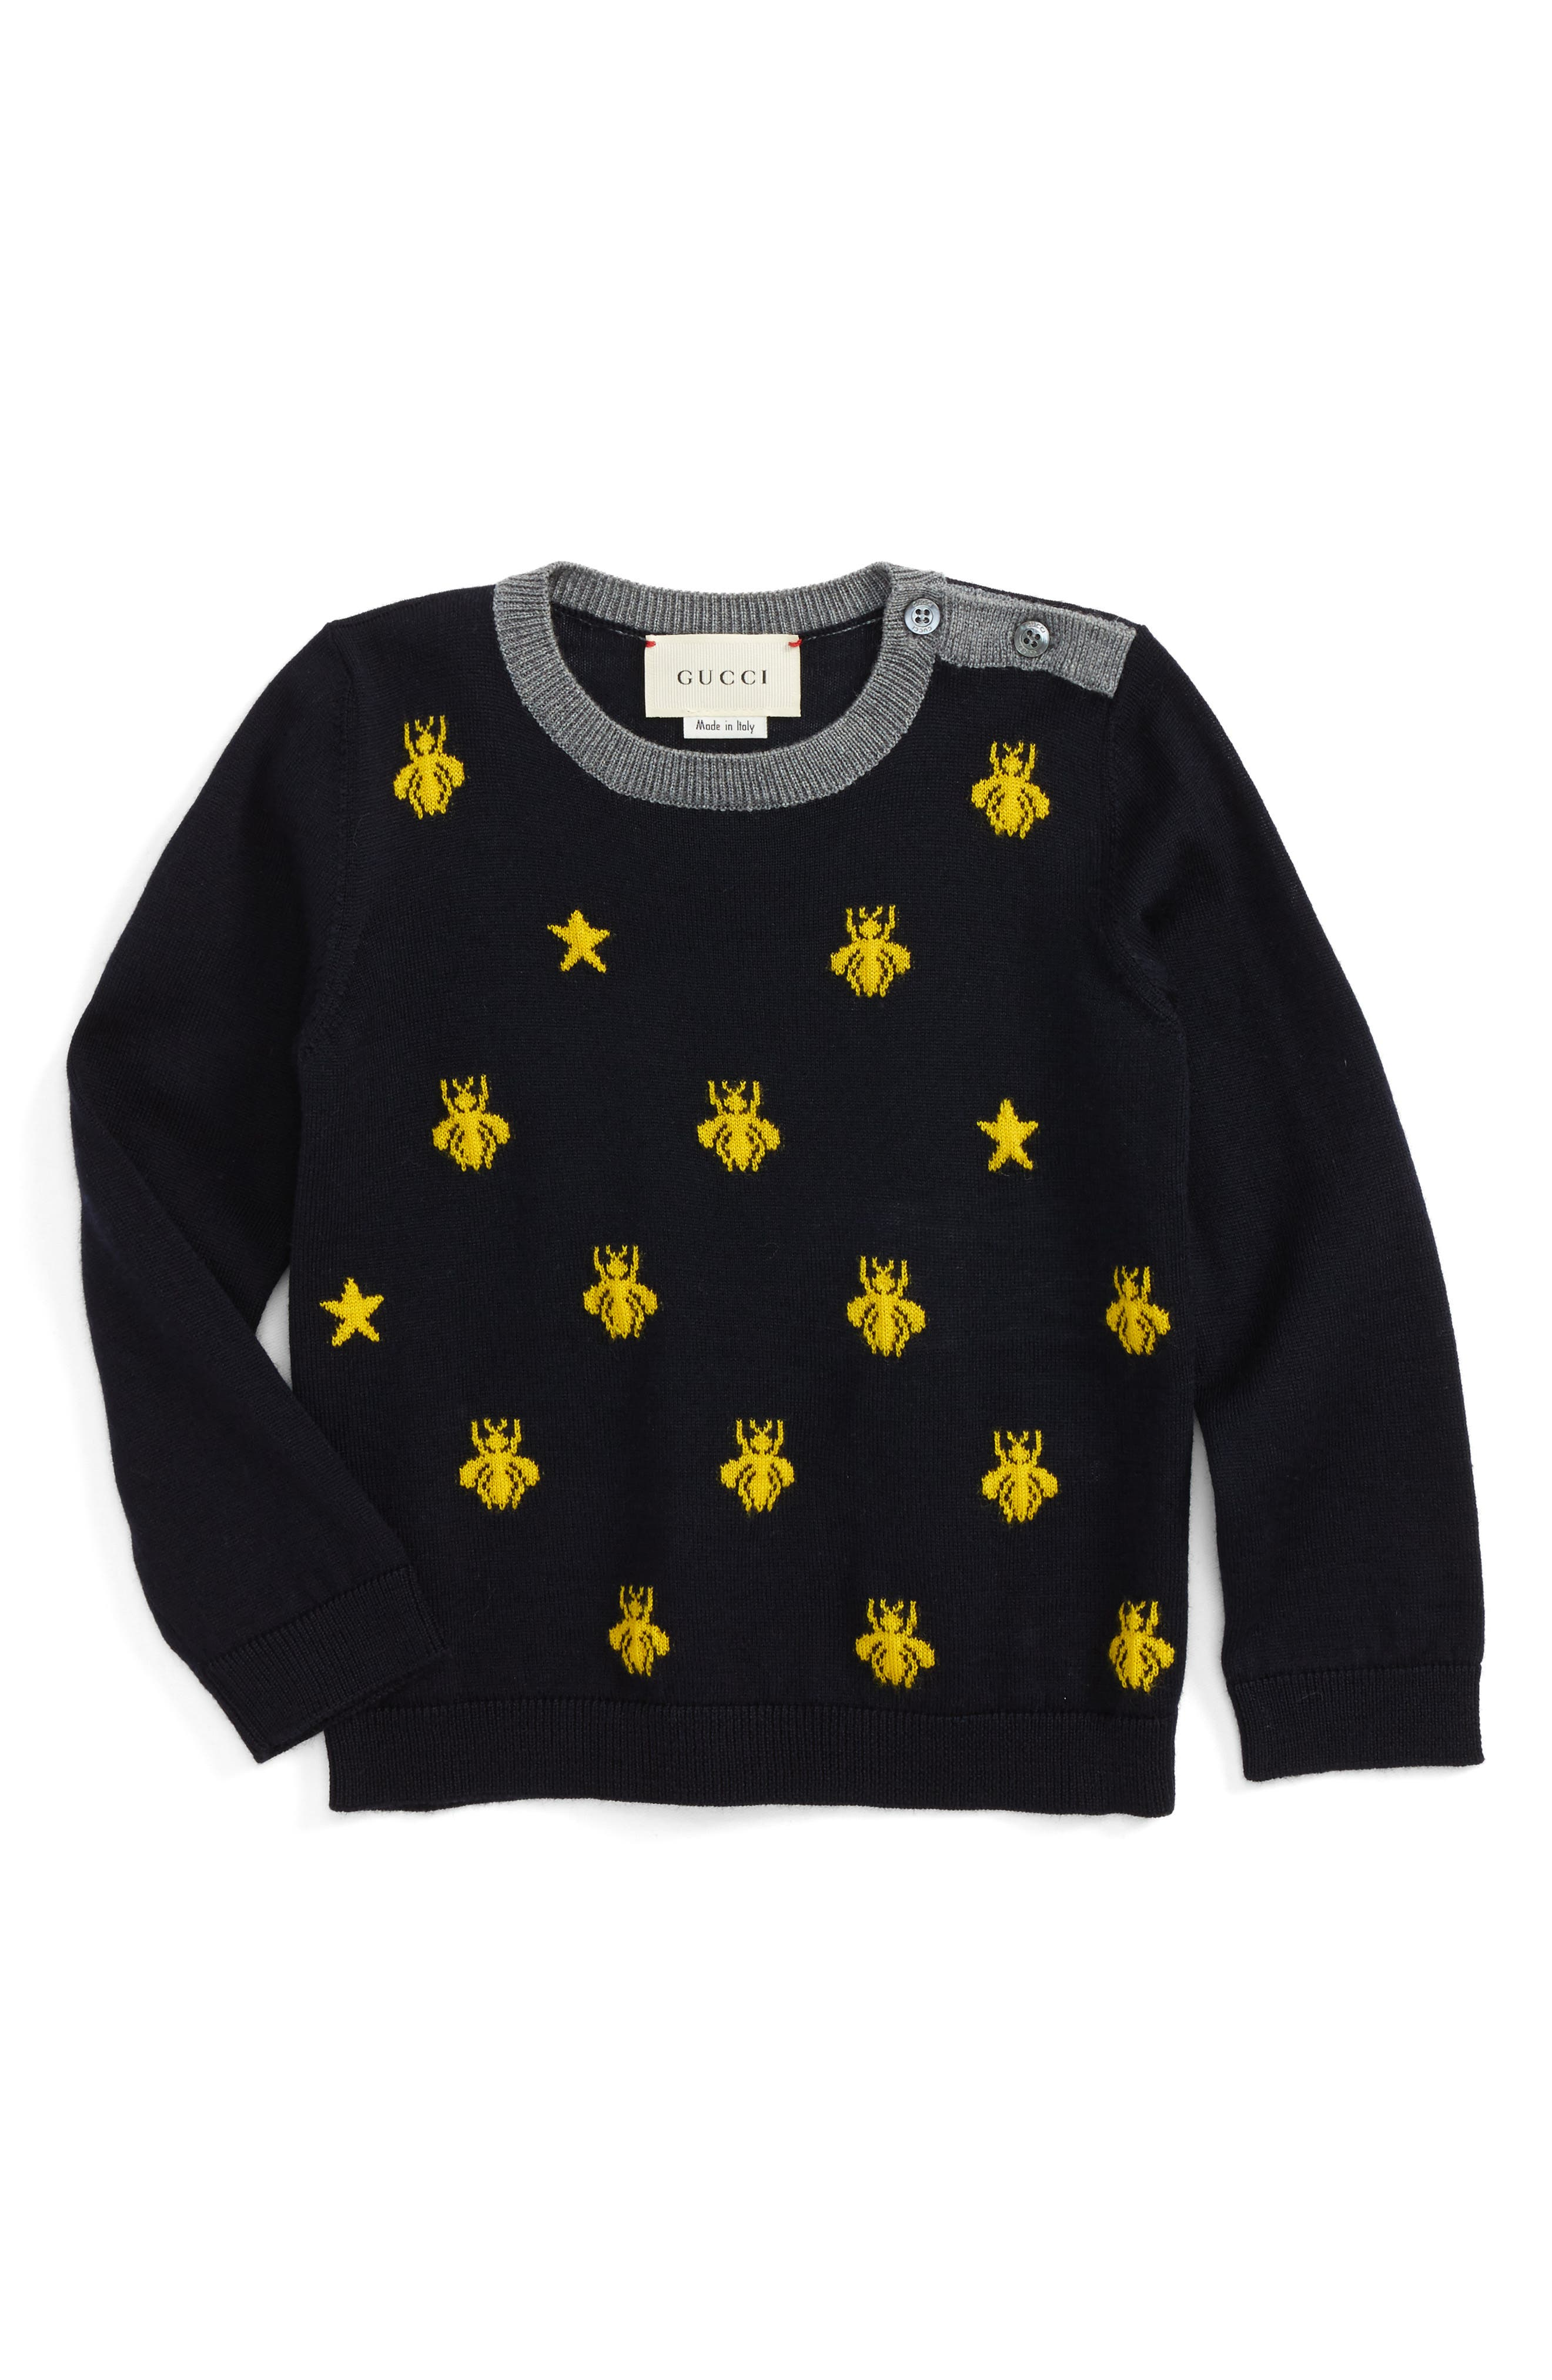 Gucci Zest Bee & Star Intarsia Wool Sweater (Baby)